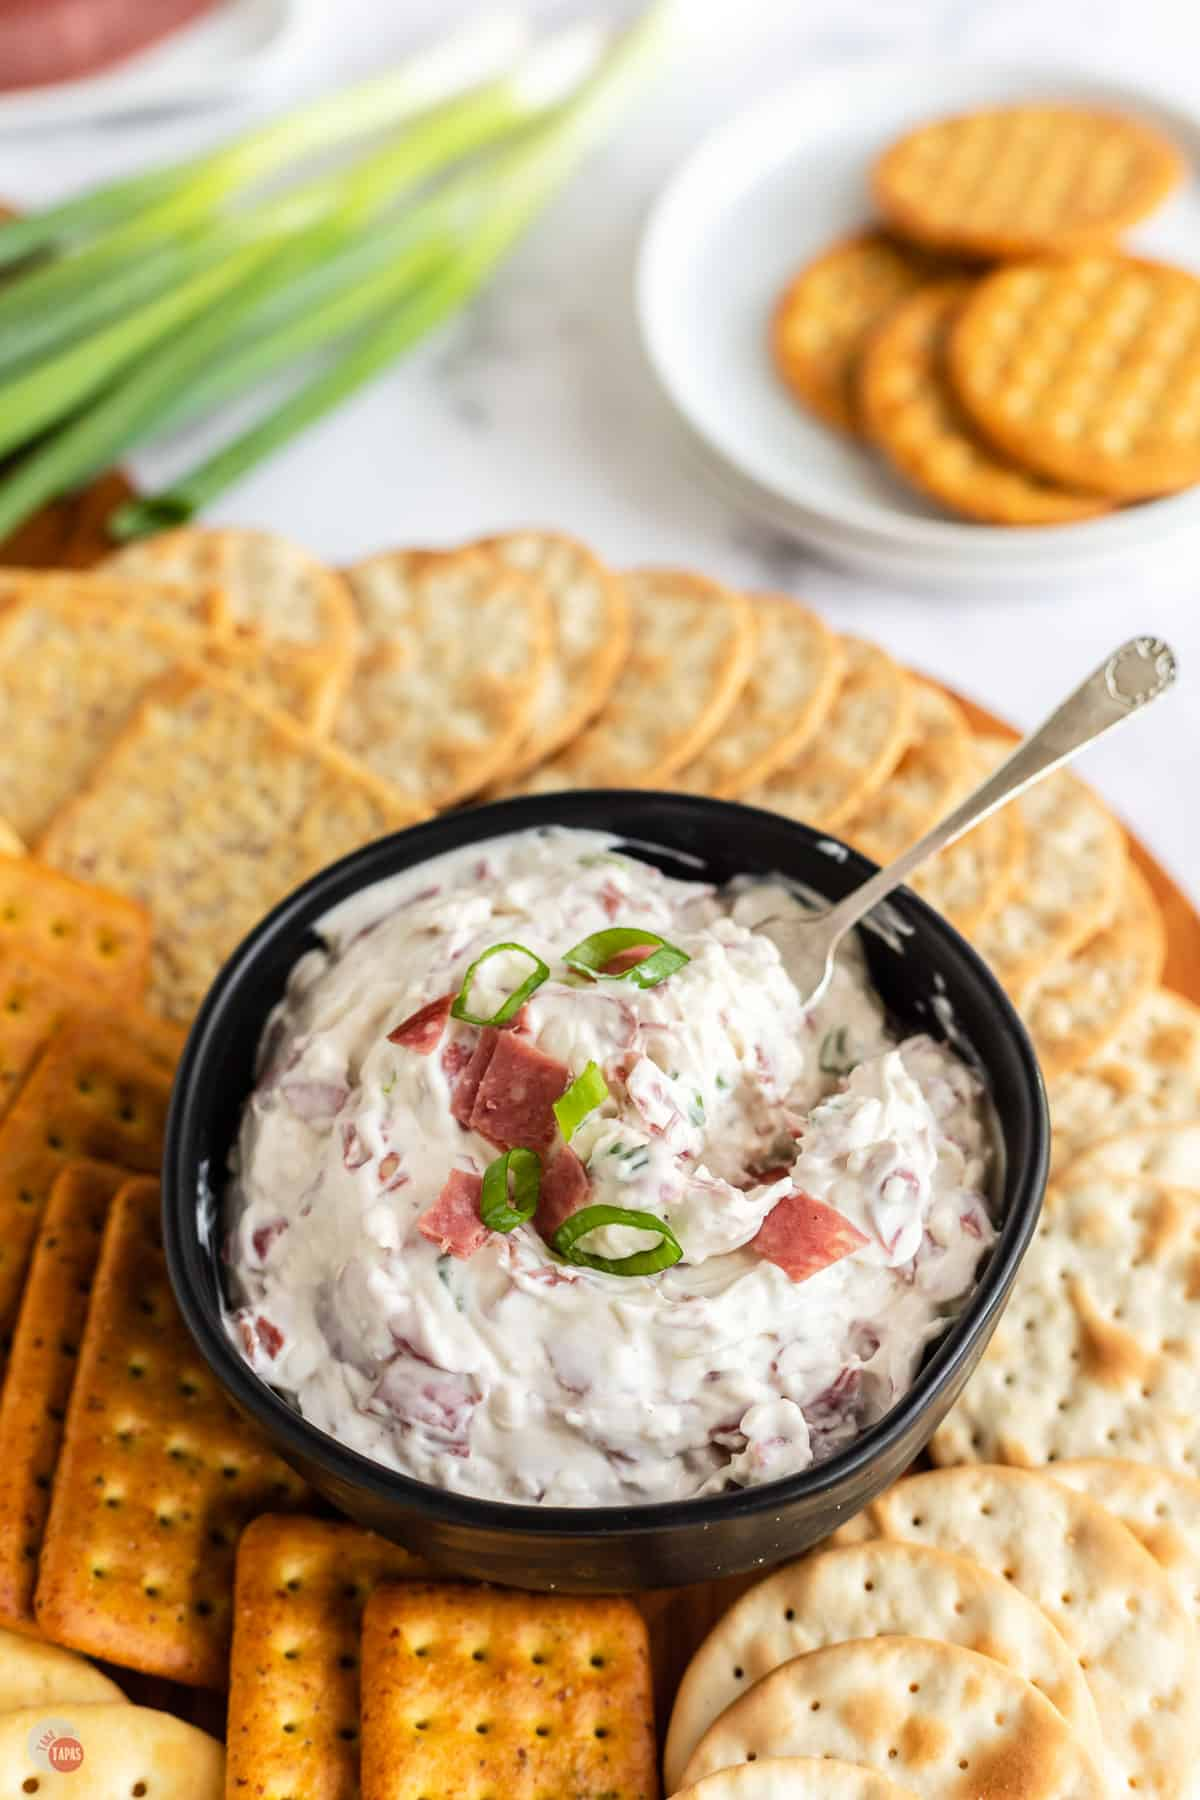 bowl of dip and crackers